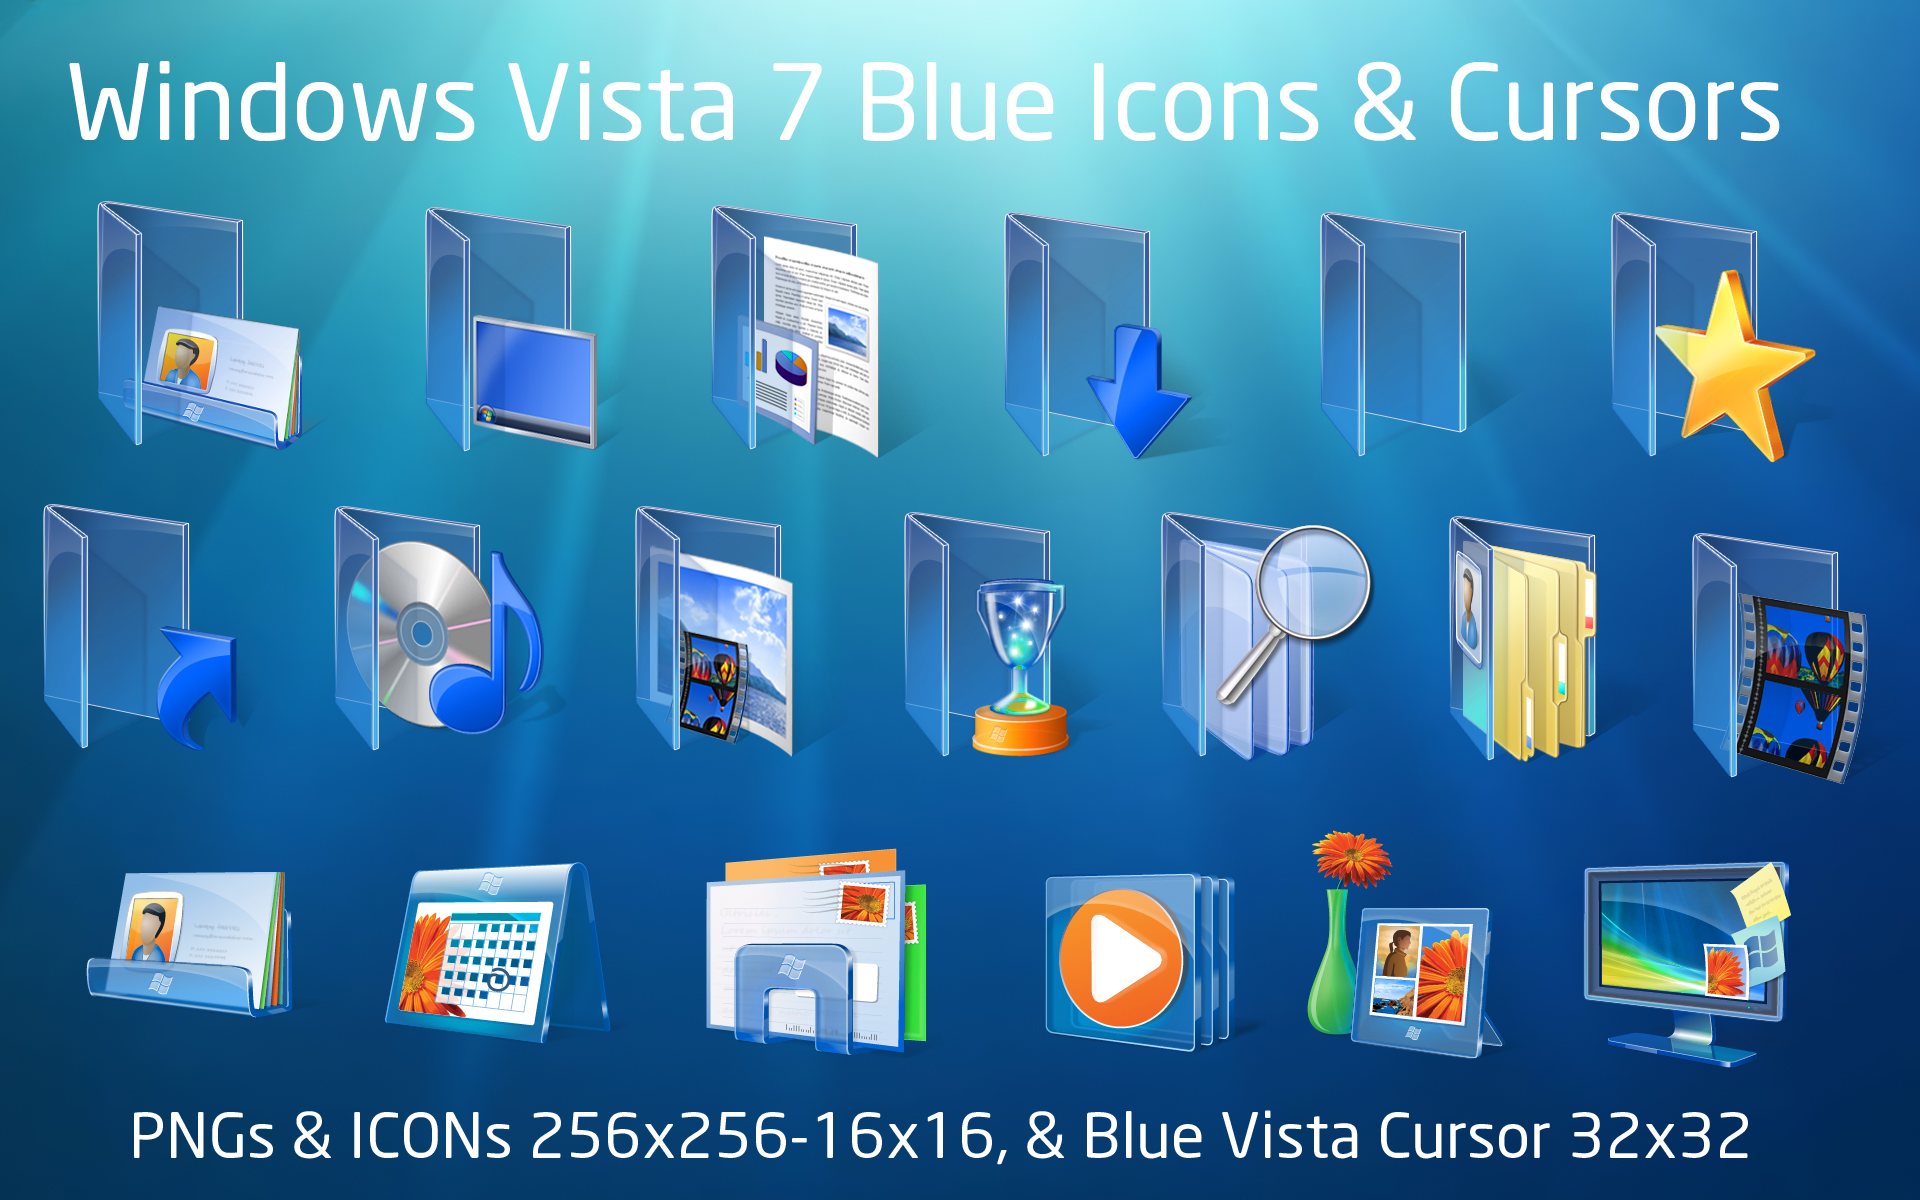 15 Windows 7 Icon Pack Free Download Images.